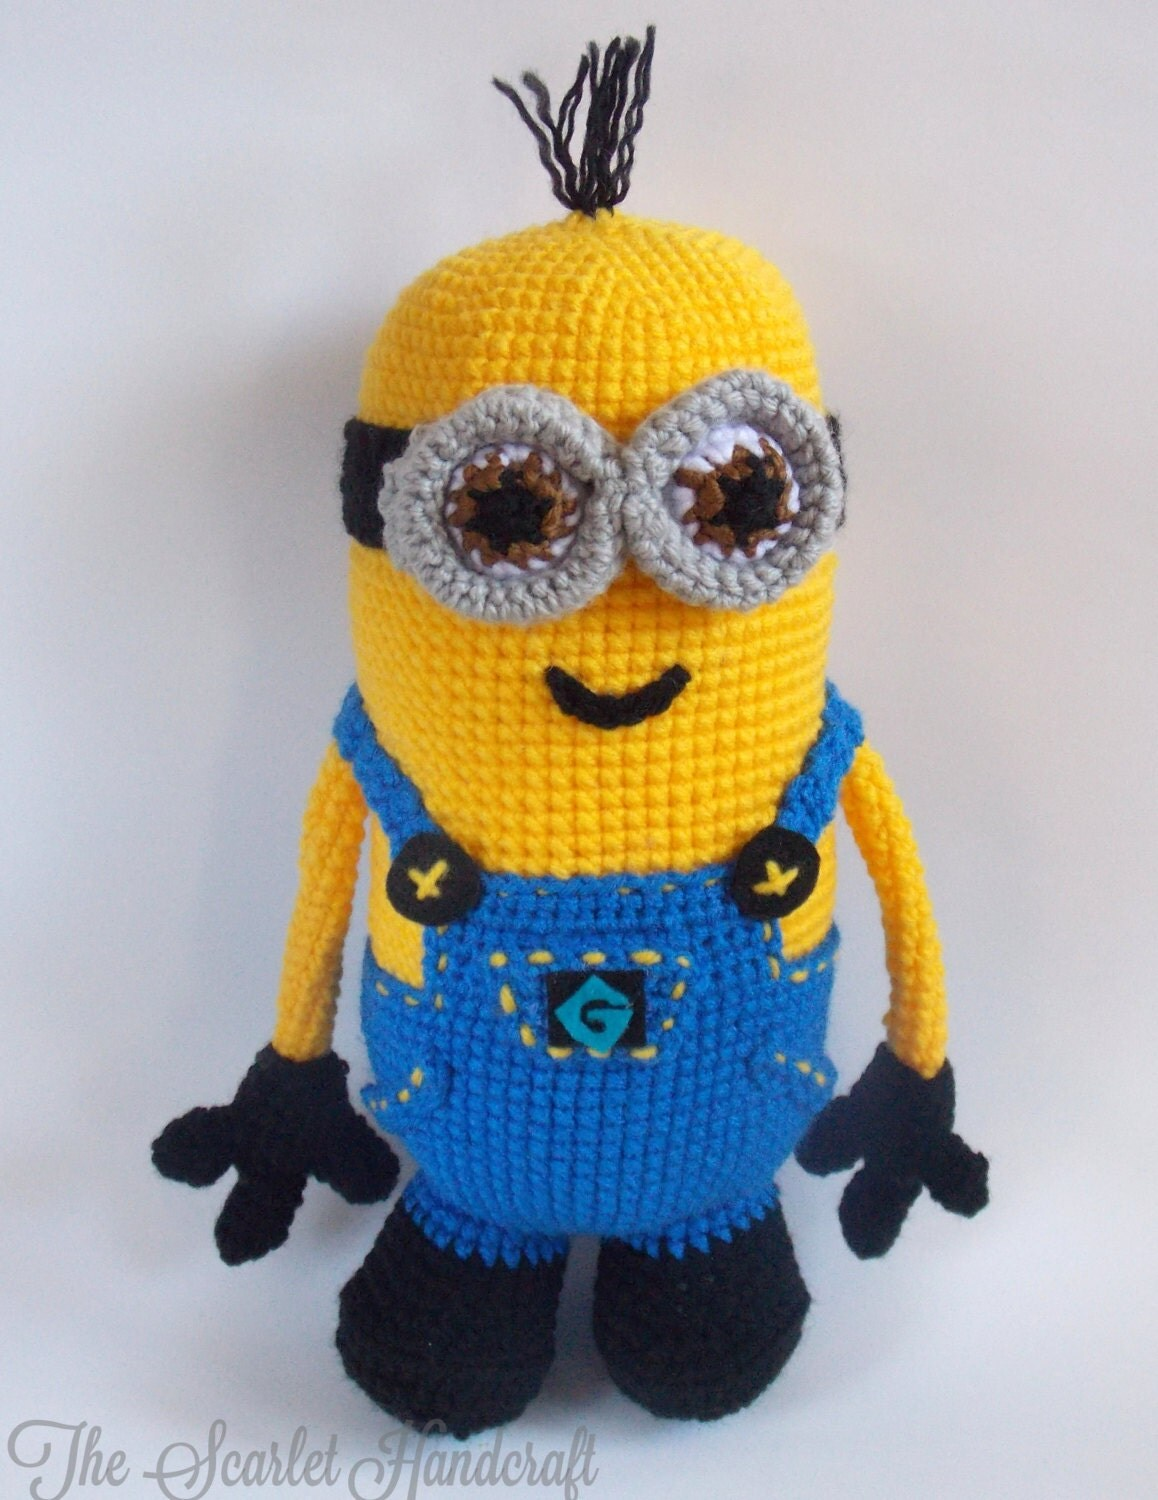 Amigurumi Minion Etsy : Minion Amigurumi. Crochet Minion. Made To Order.